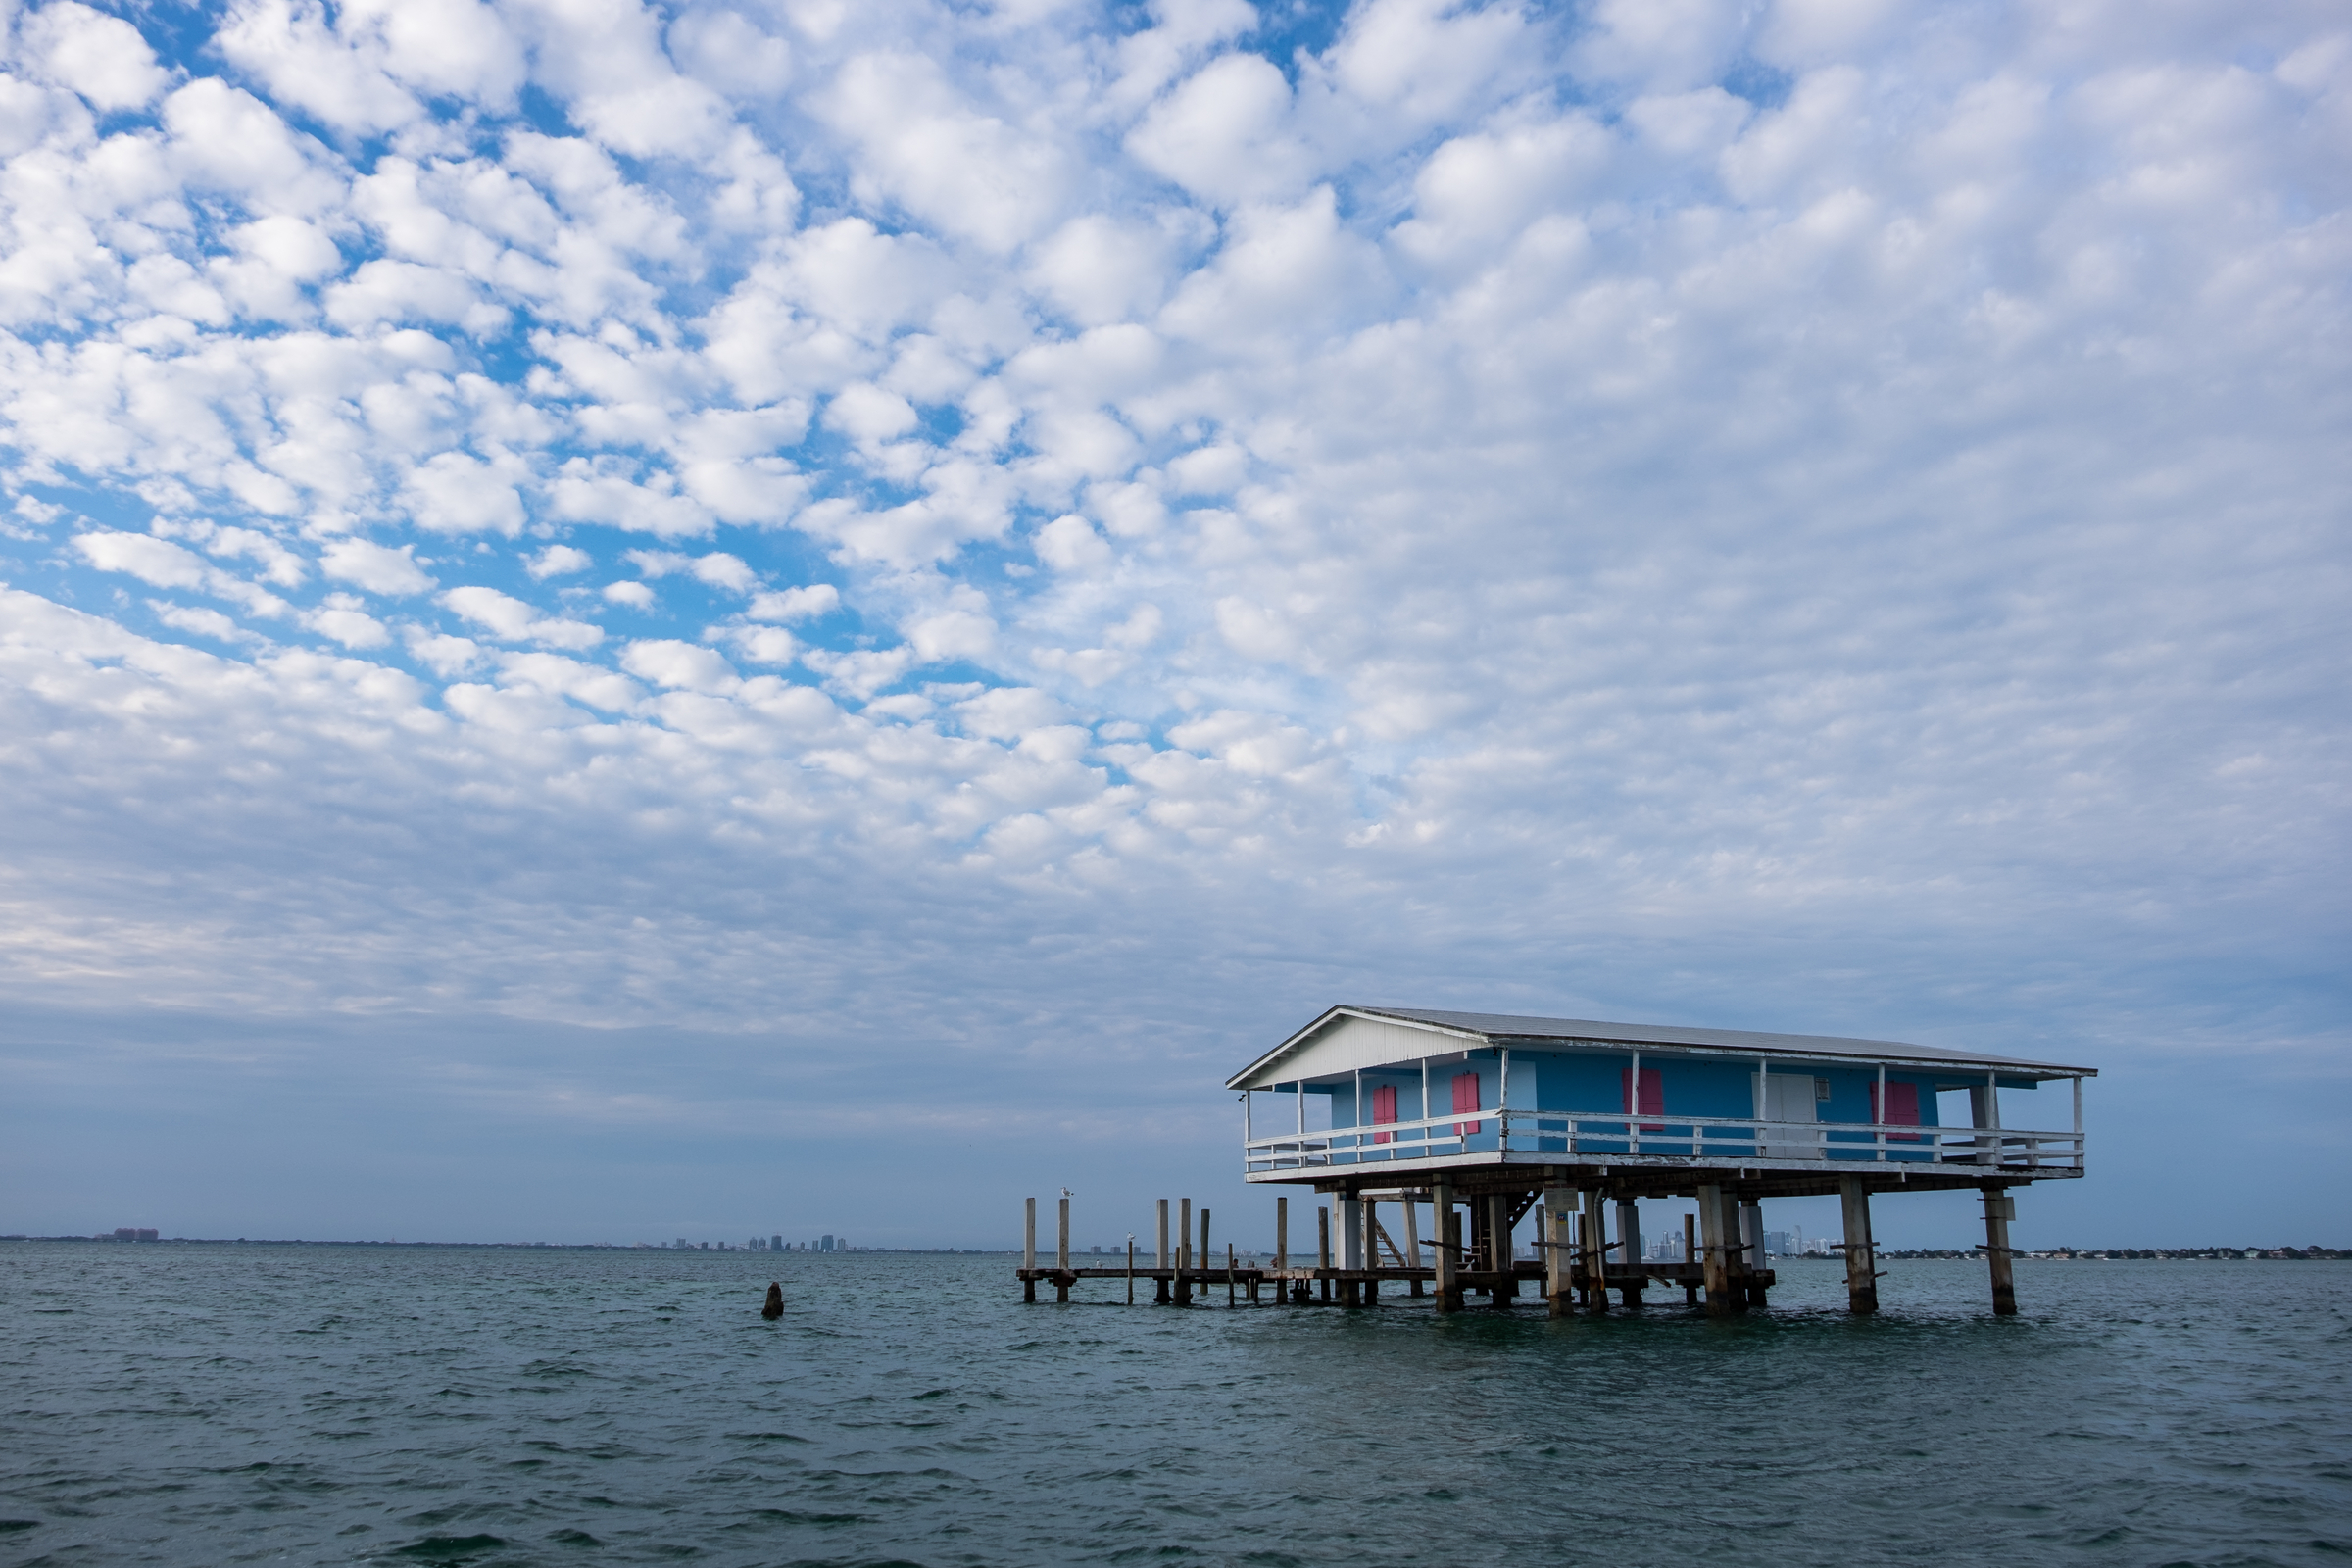 The houses in Stiltsville are still privately owned, even though the reside within the national park.